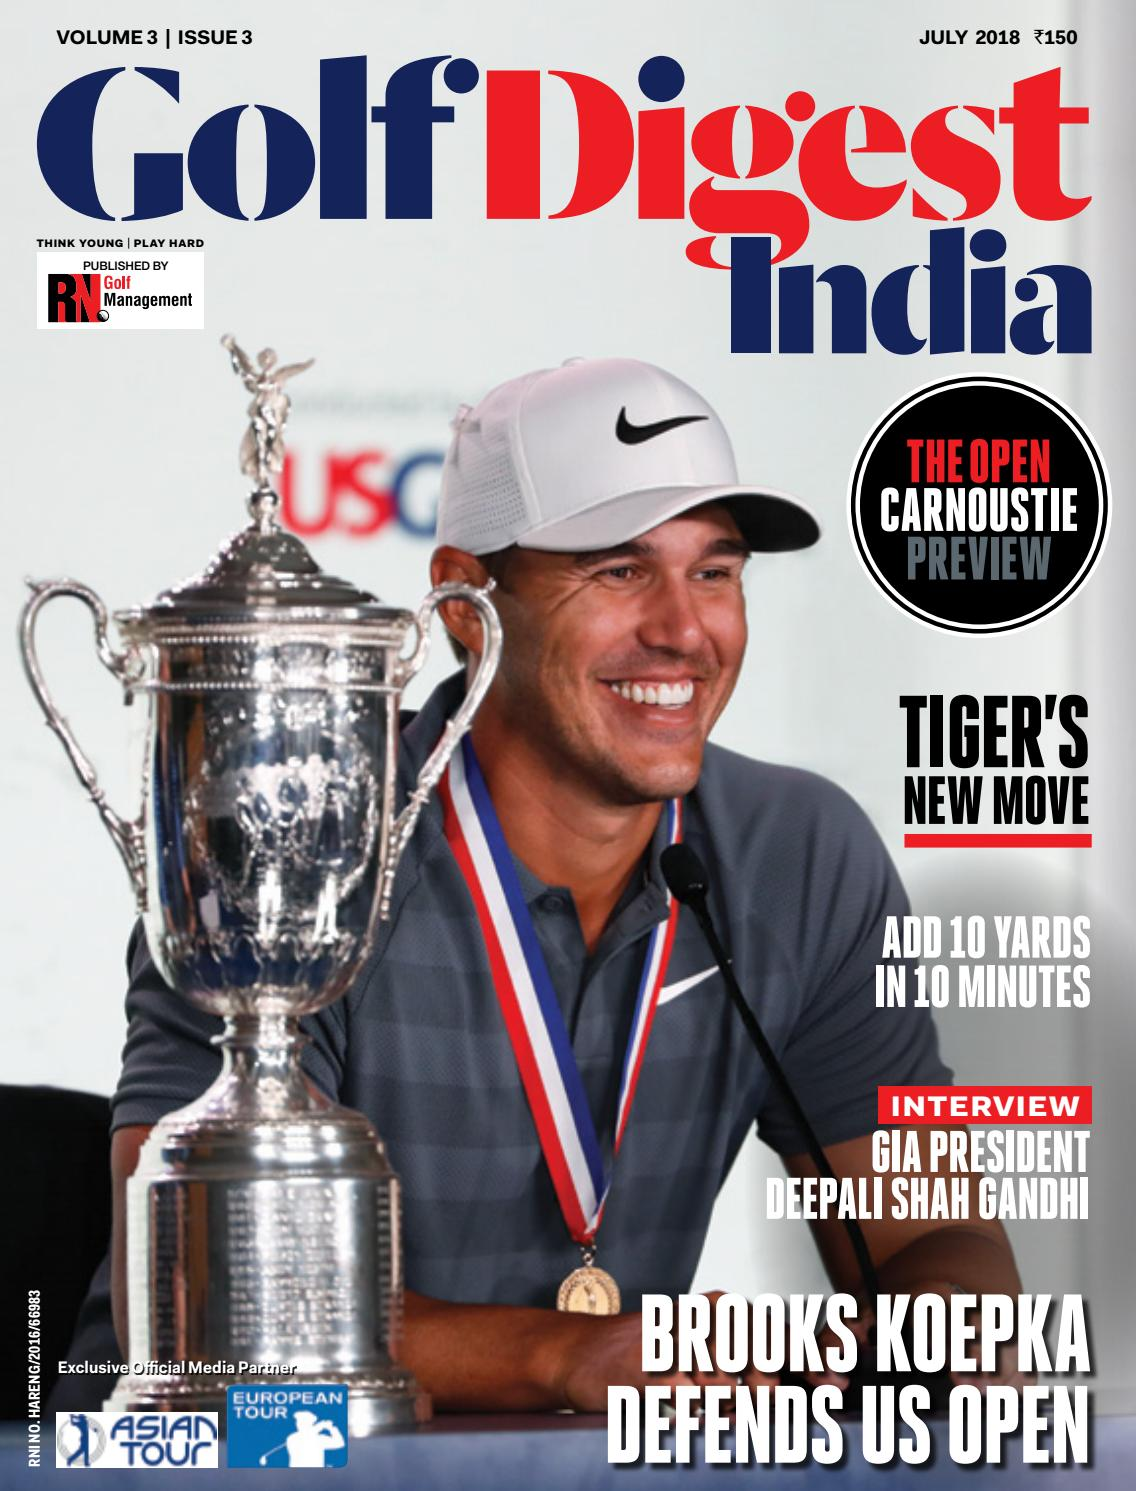 33030631e2c Golf Digest India - July 2018 by Golf Digest India - issuu